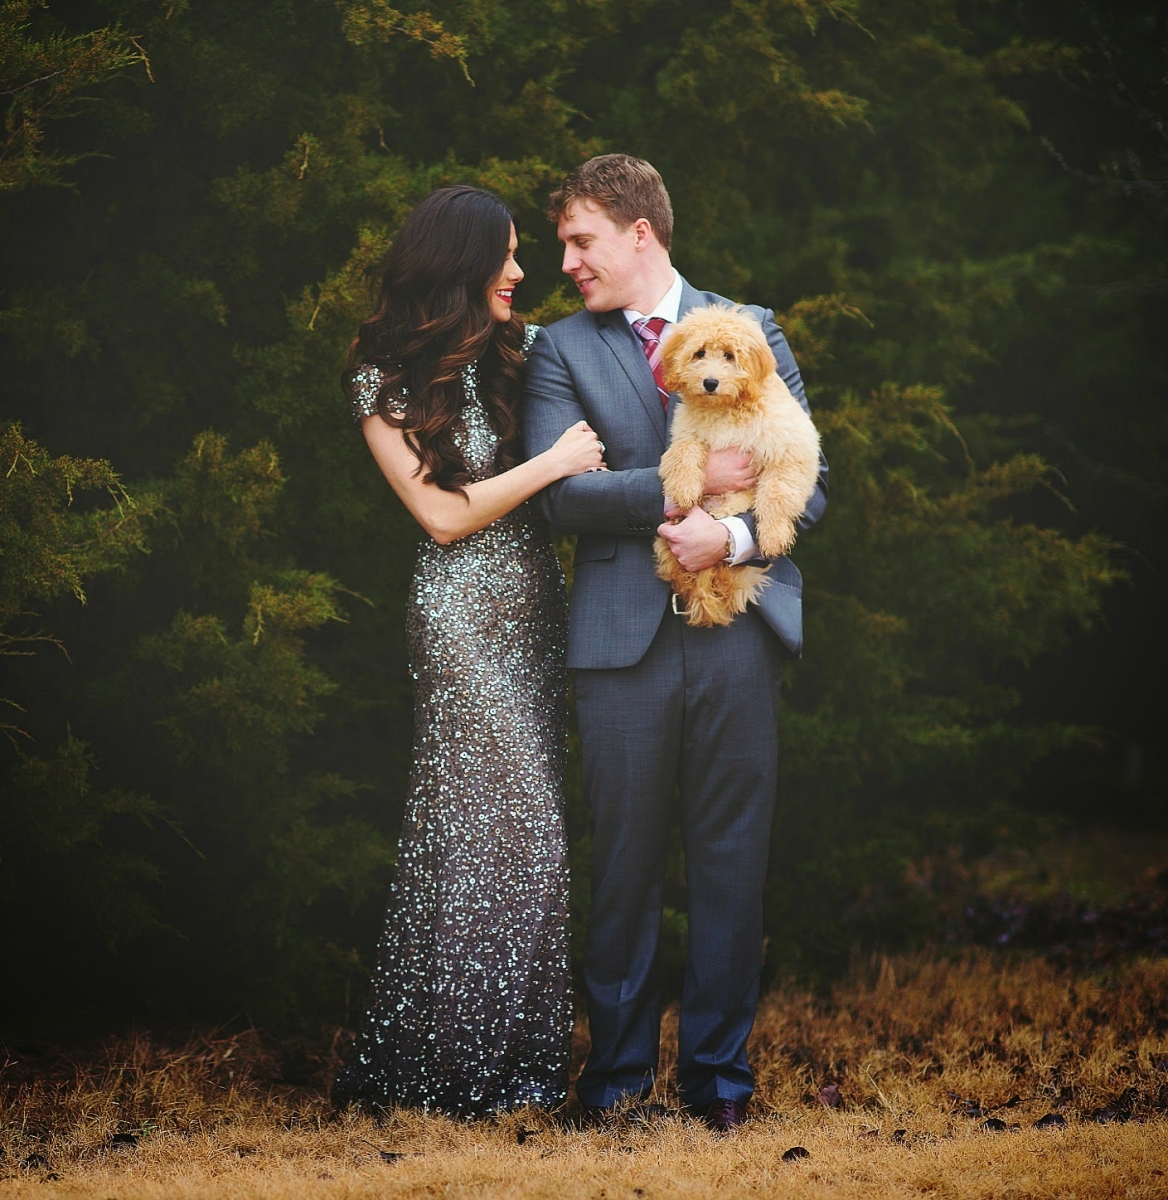 Sequin Leggings Outfit by popular US fashion blog, The Sweetest Thing: image of a woman wearing a silver sequin dress and standing next to her husband who is wearing a suit and holding their goldendoodle puppy.